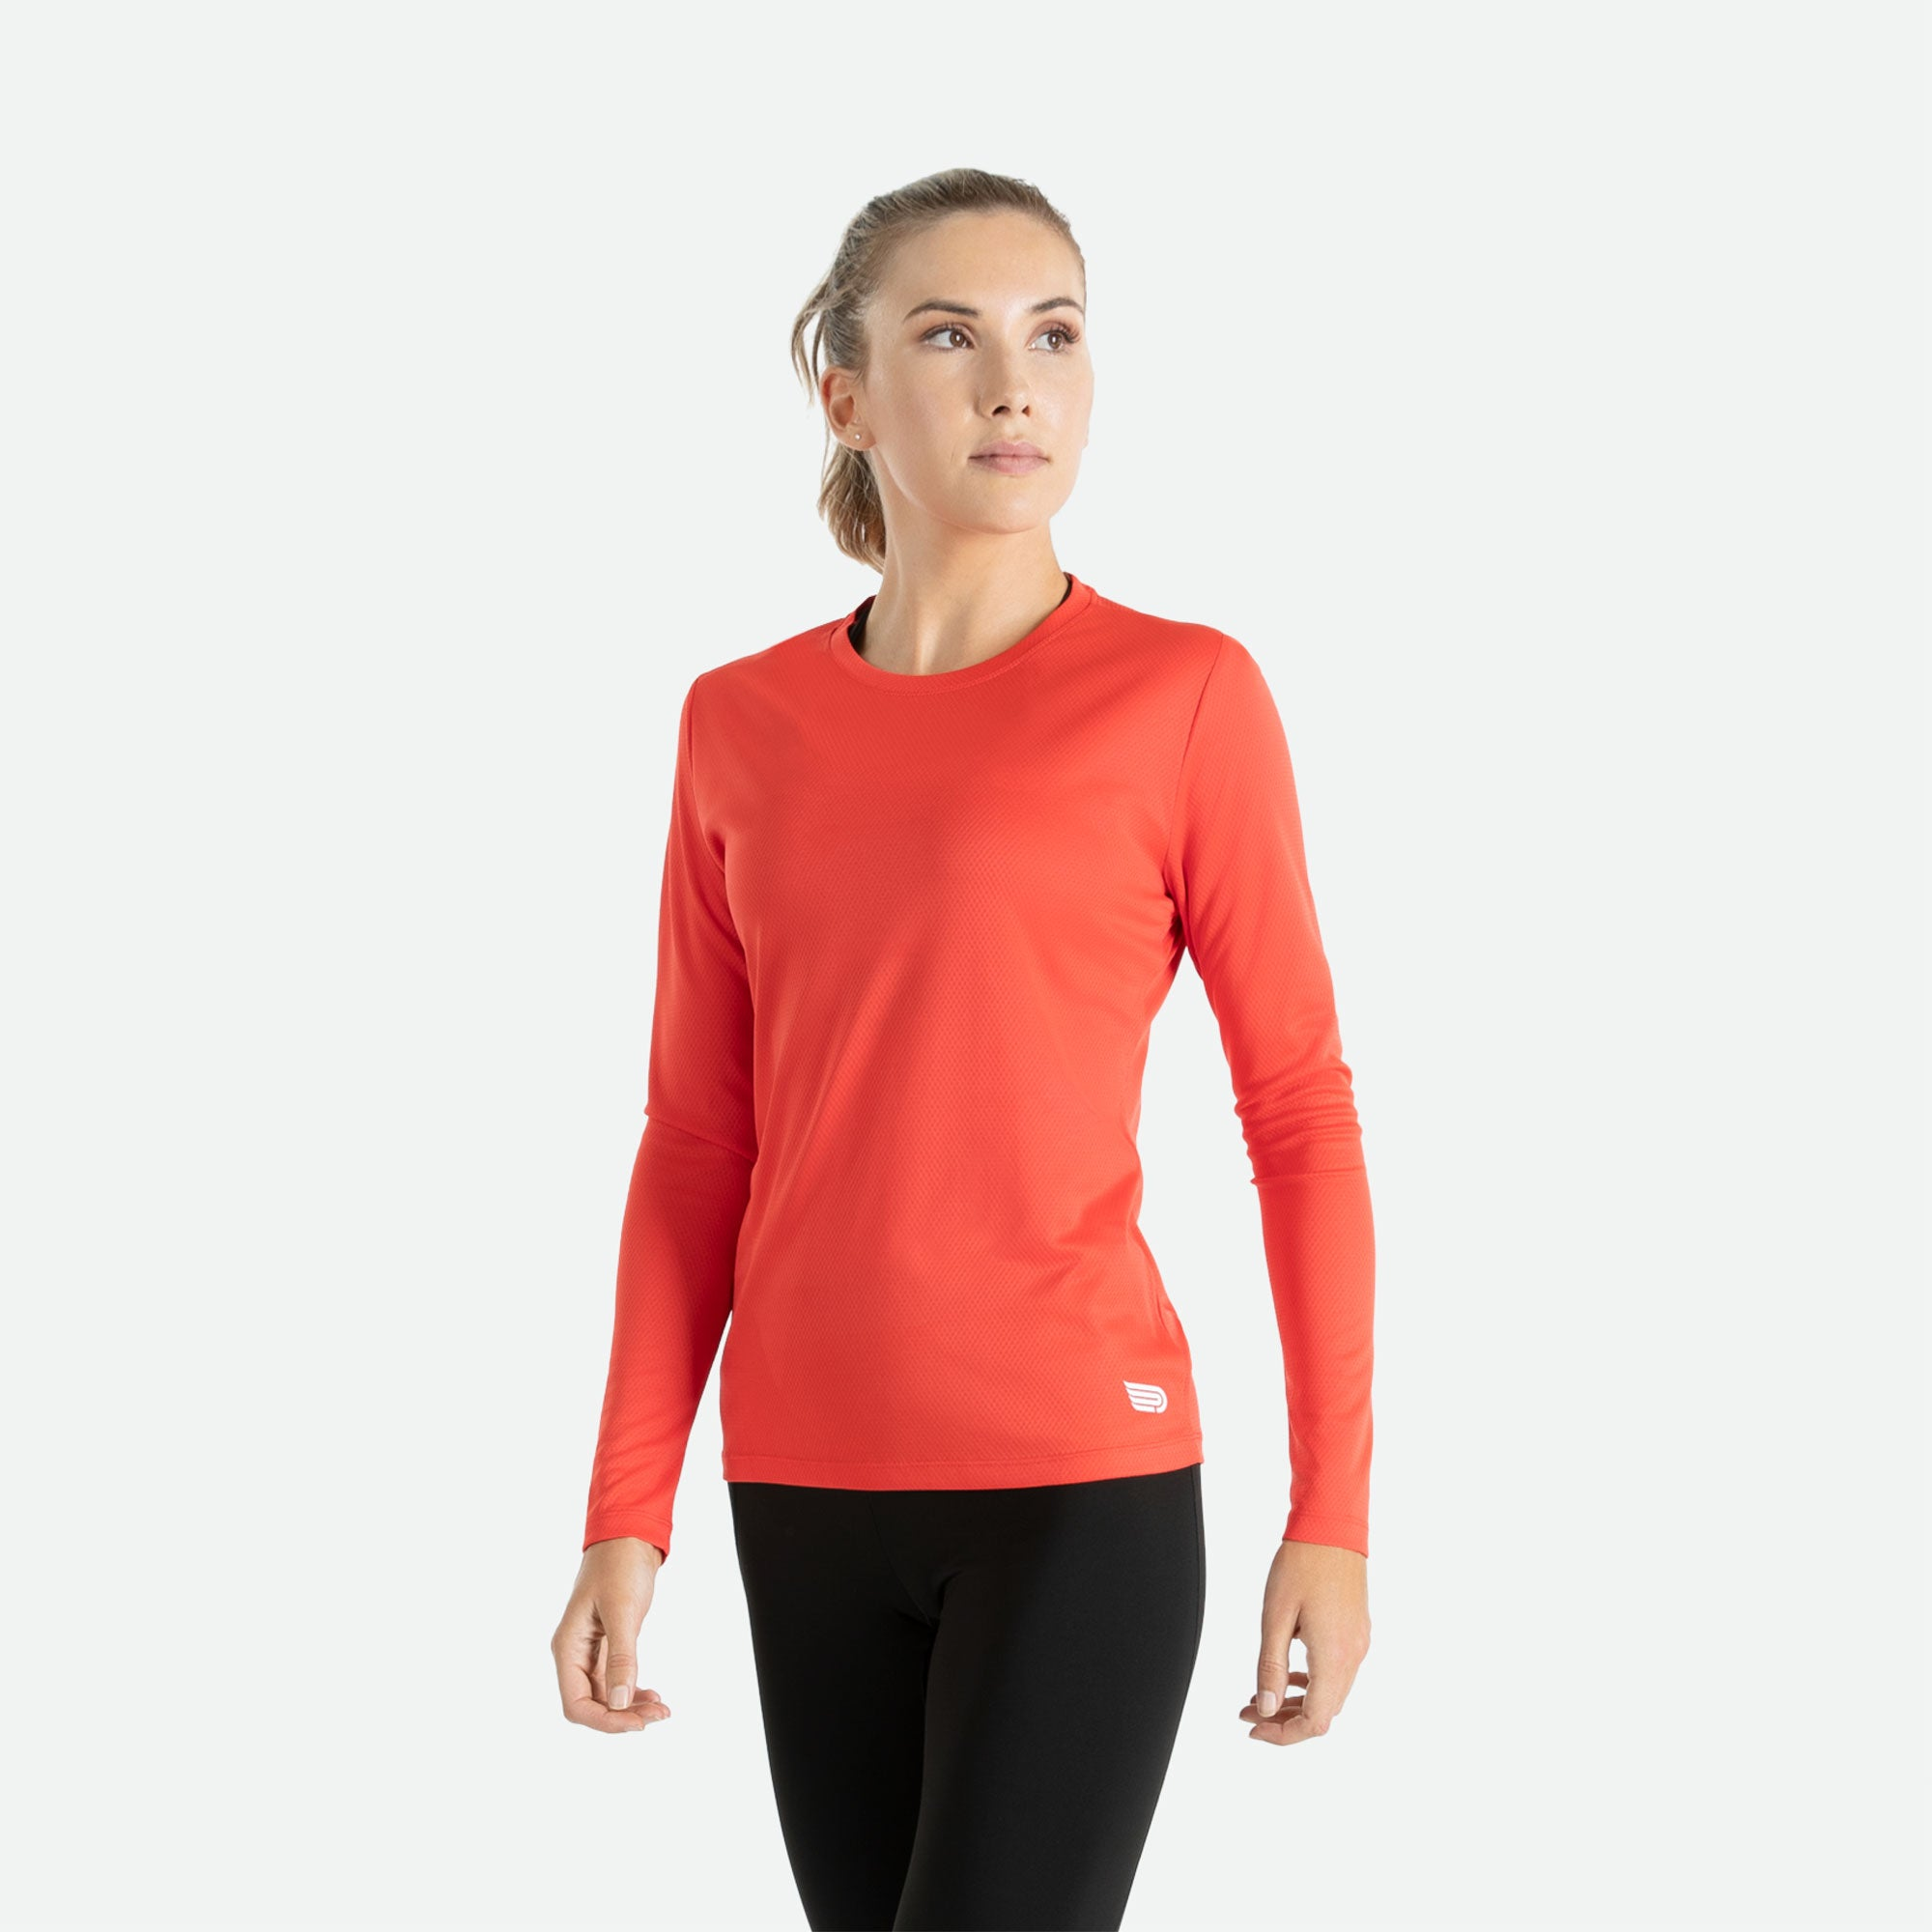 Our Pressio women's red Hāpai long sleeve t-shirt features EcoTECH MF fabric which has dual filament recycled polyester yarns from Unifi for superior moisture control to keep you dry.